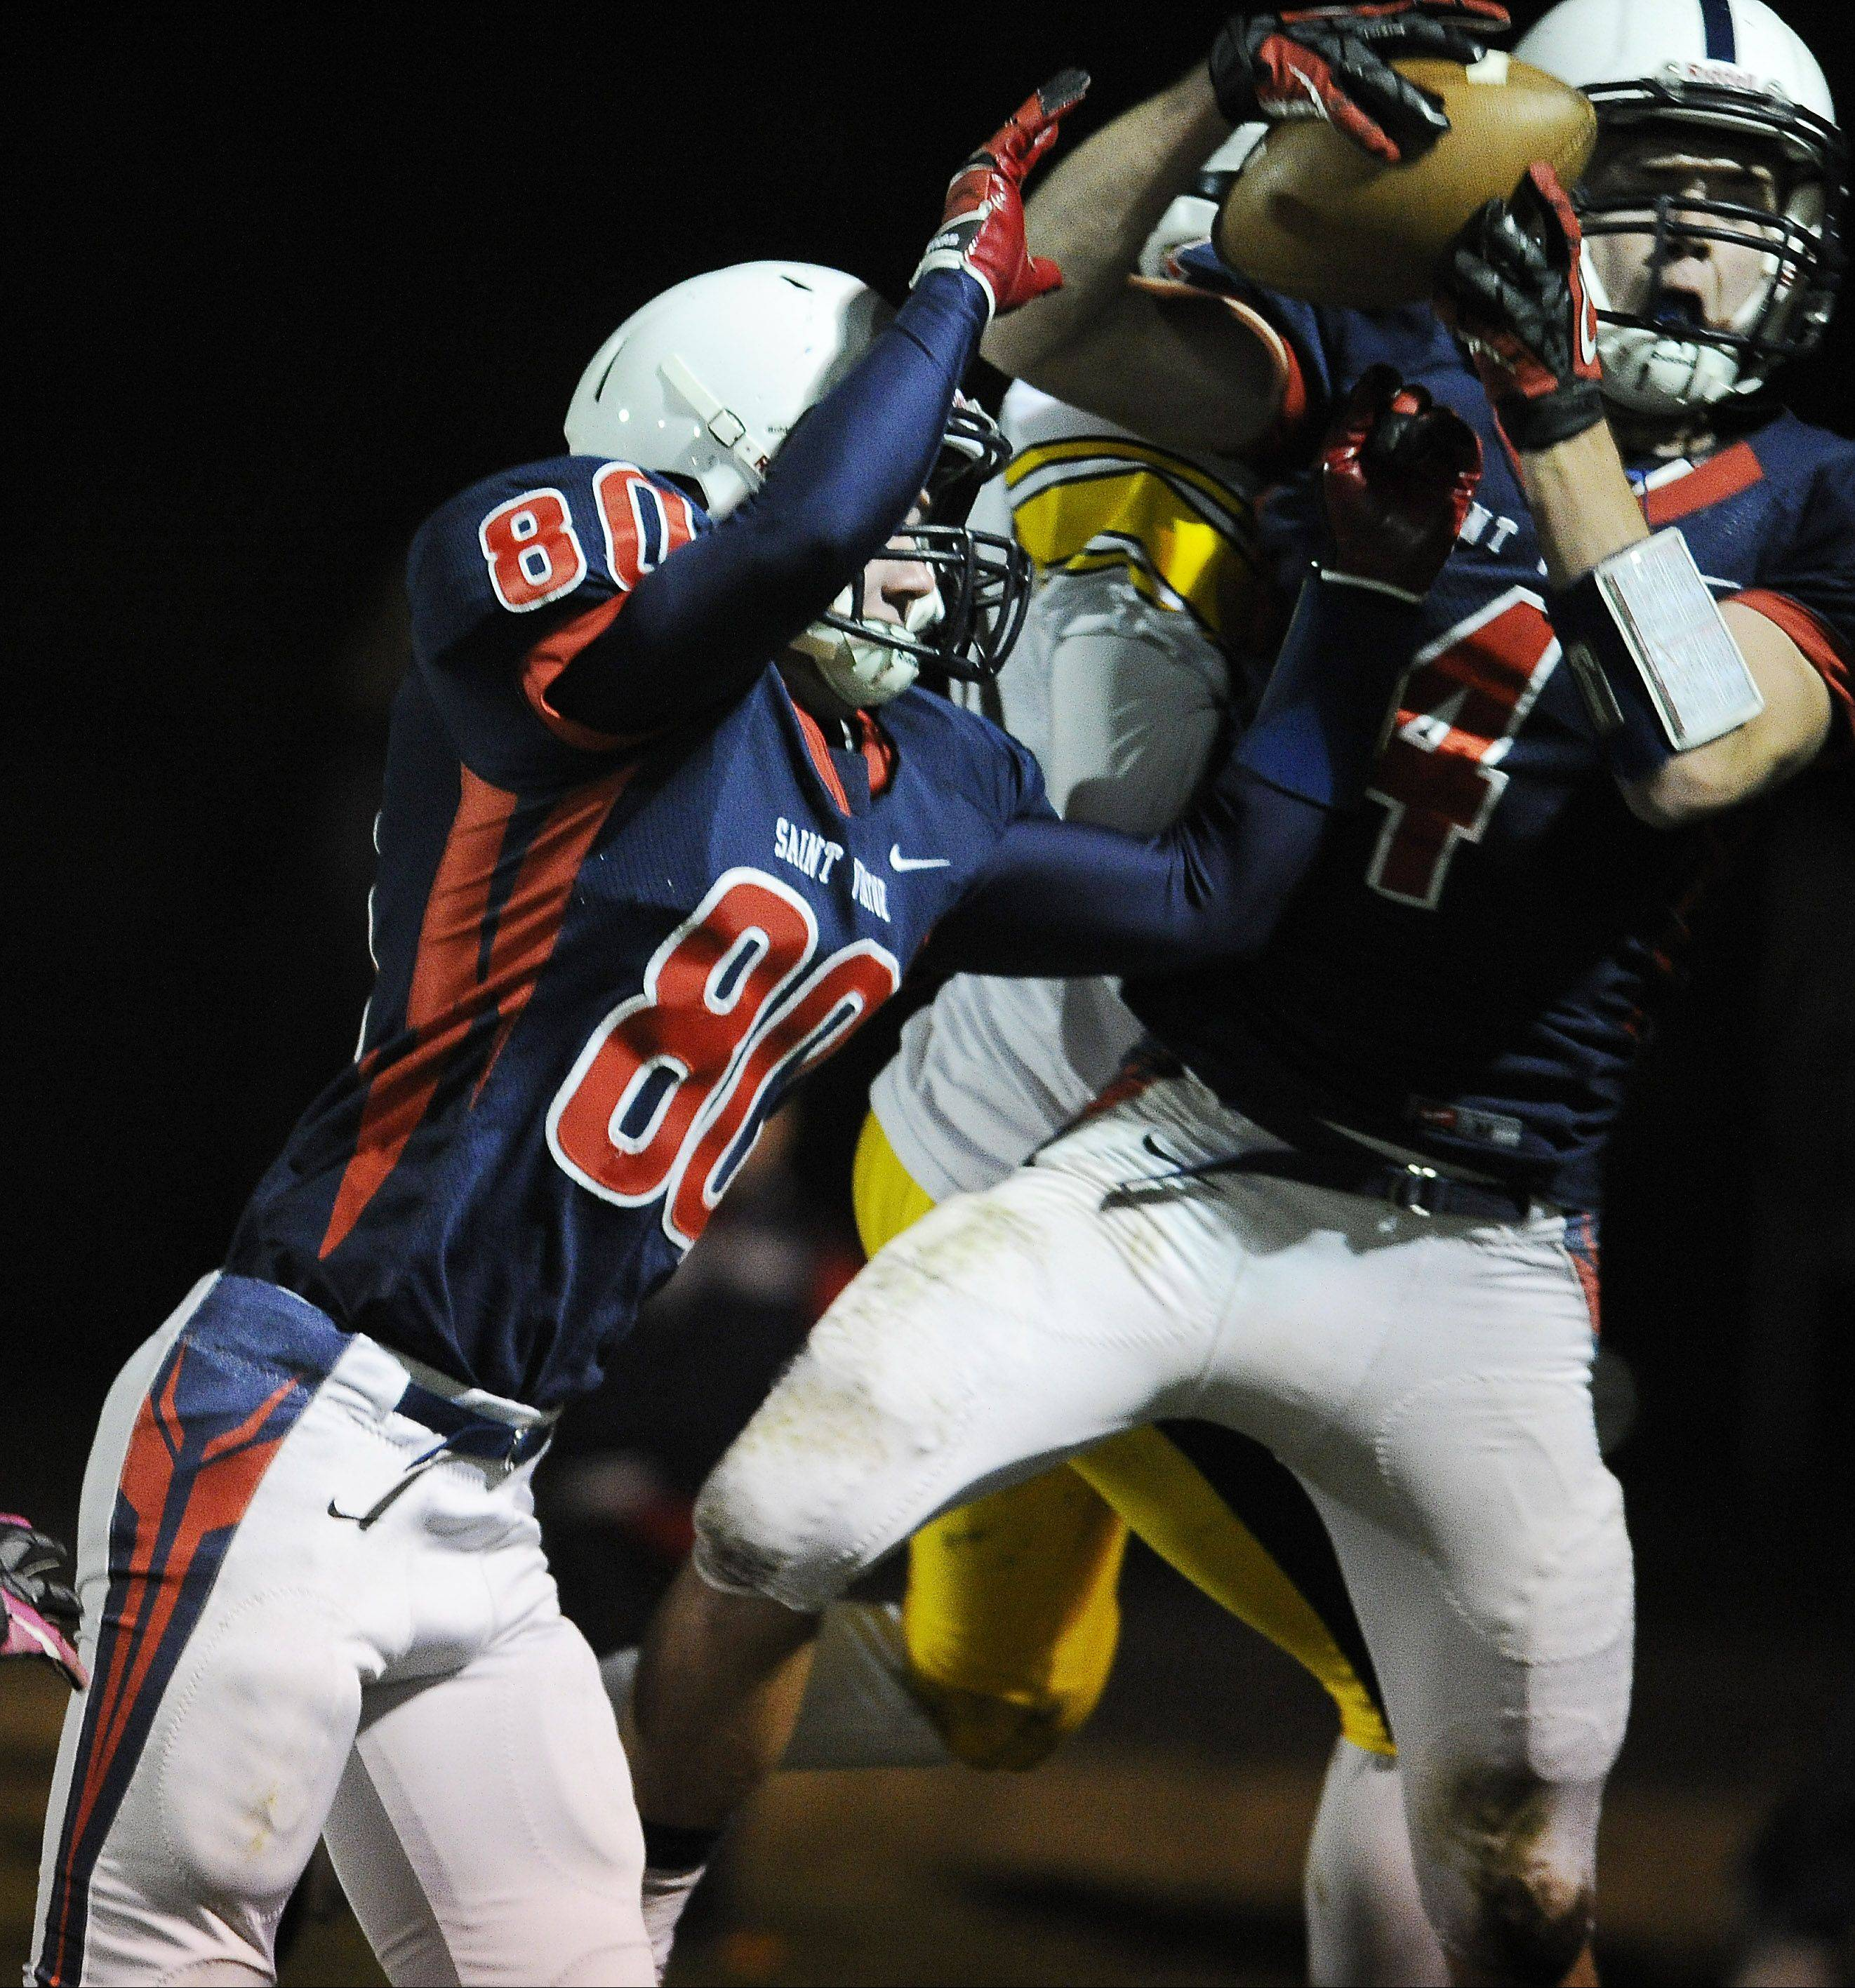 In a controversial catch that would have been a touchdown late in the second quarter, St. Viator�s Ben Dickey was ruled out of bounds on the play during the Lions� 31-21 victory in Arlington Heights on Friday.